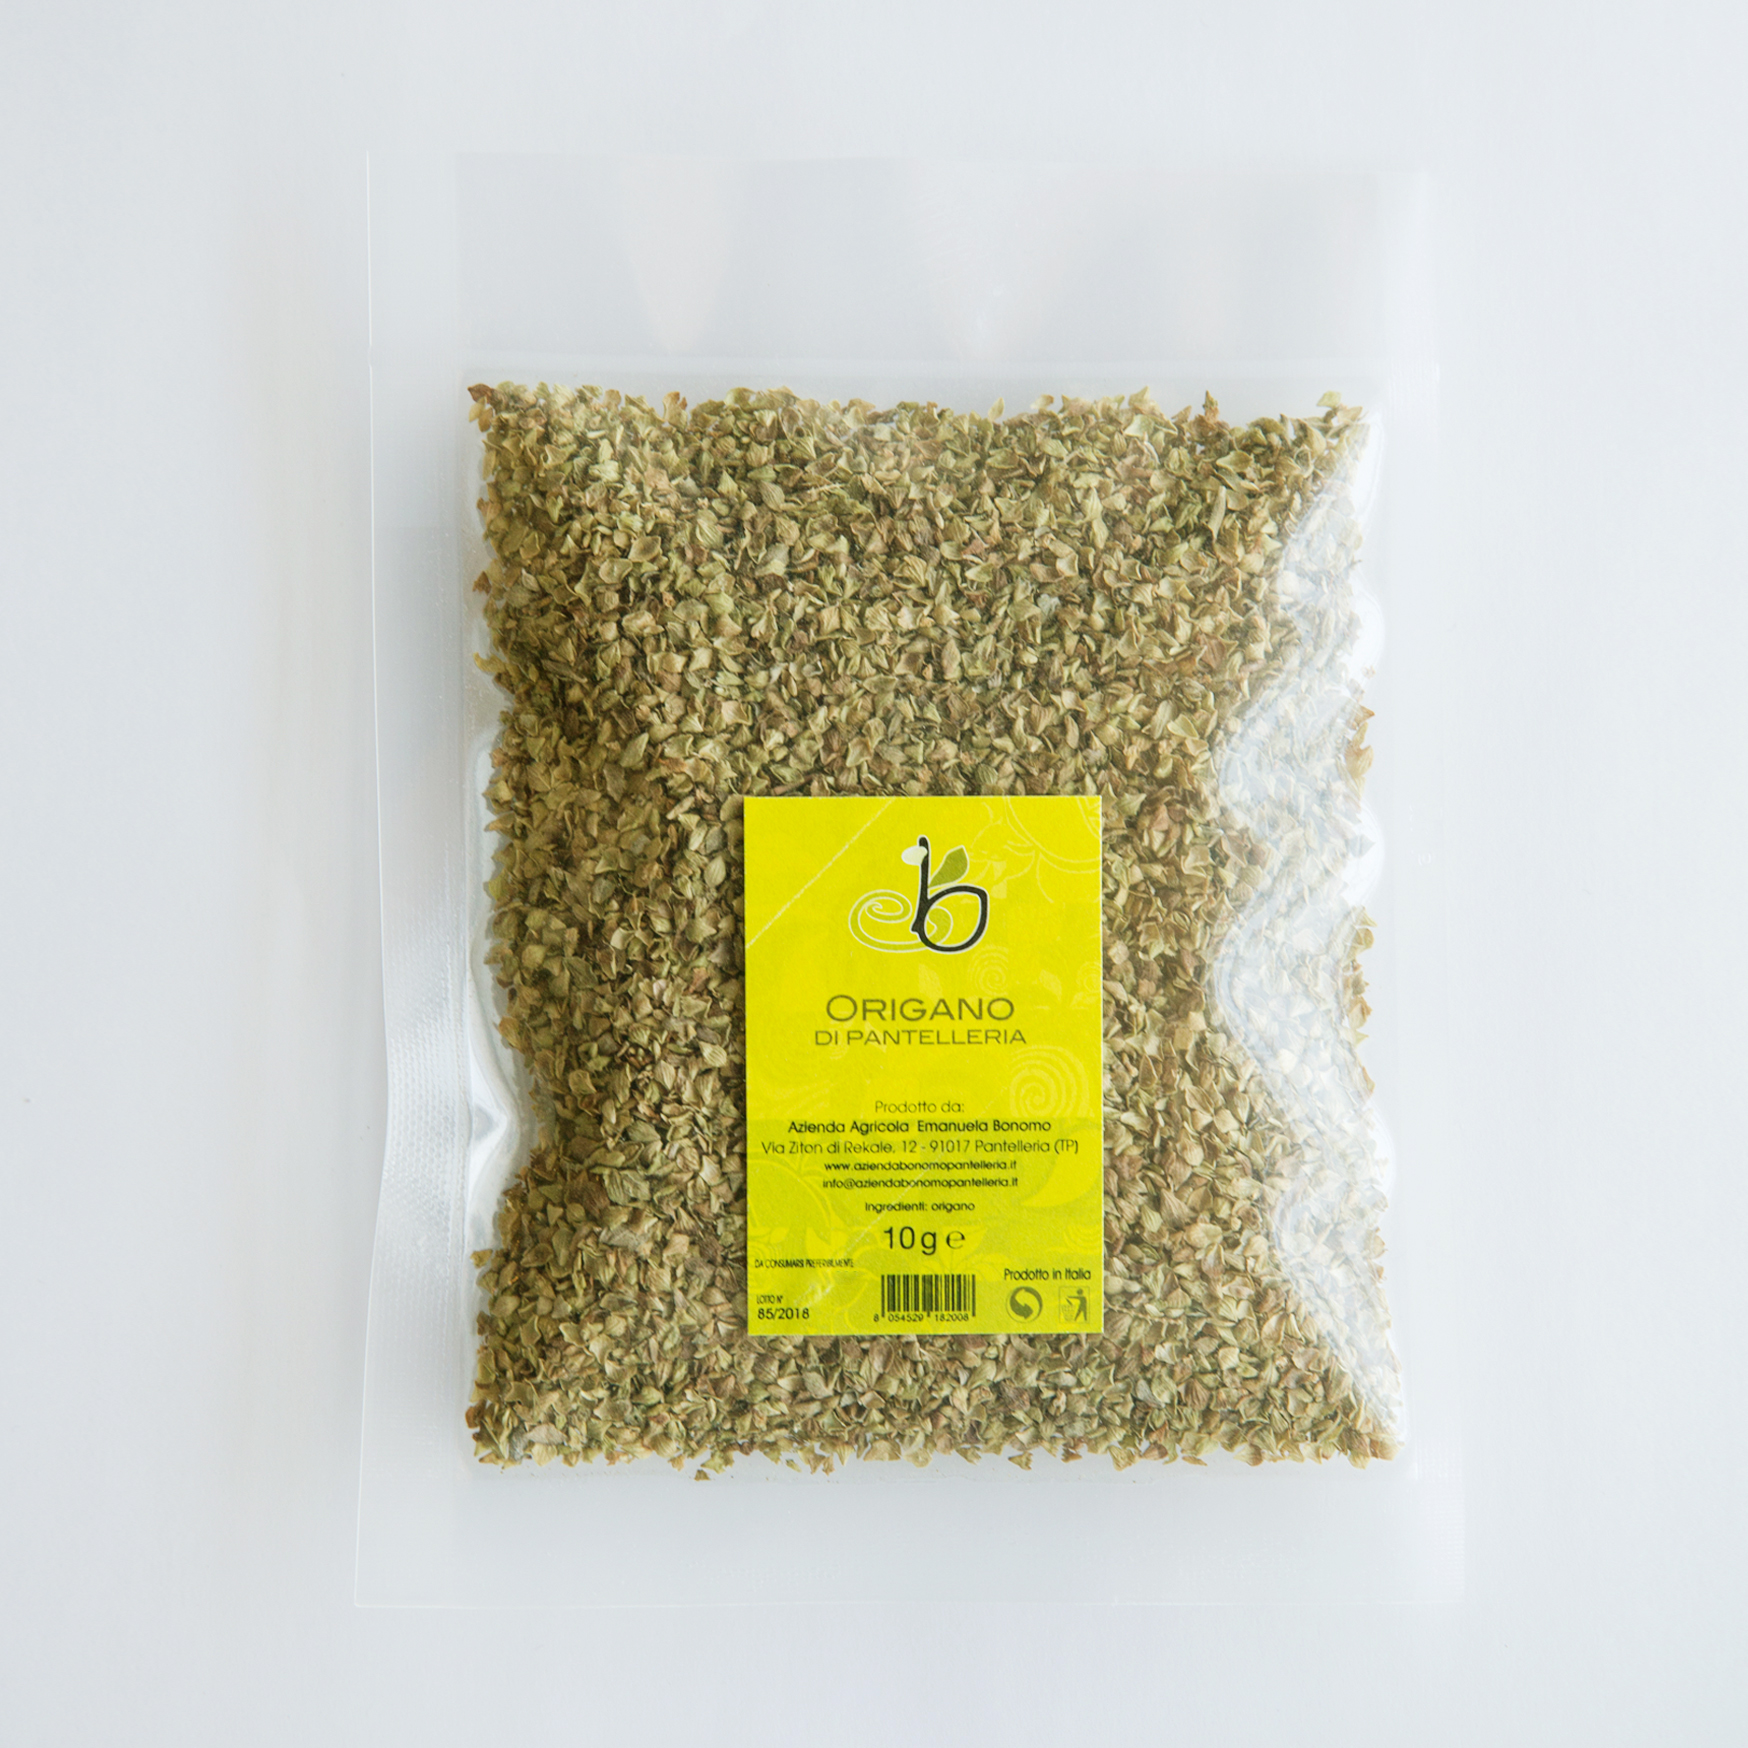 https://gelato-naturale.com/wp-content/uploads/2020/08/oregano.jpg